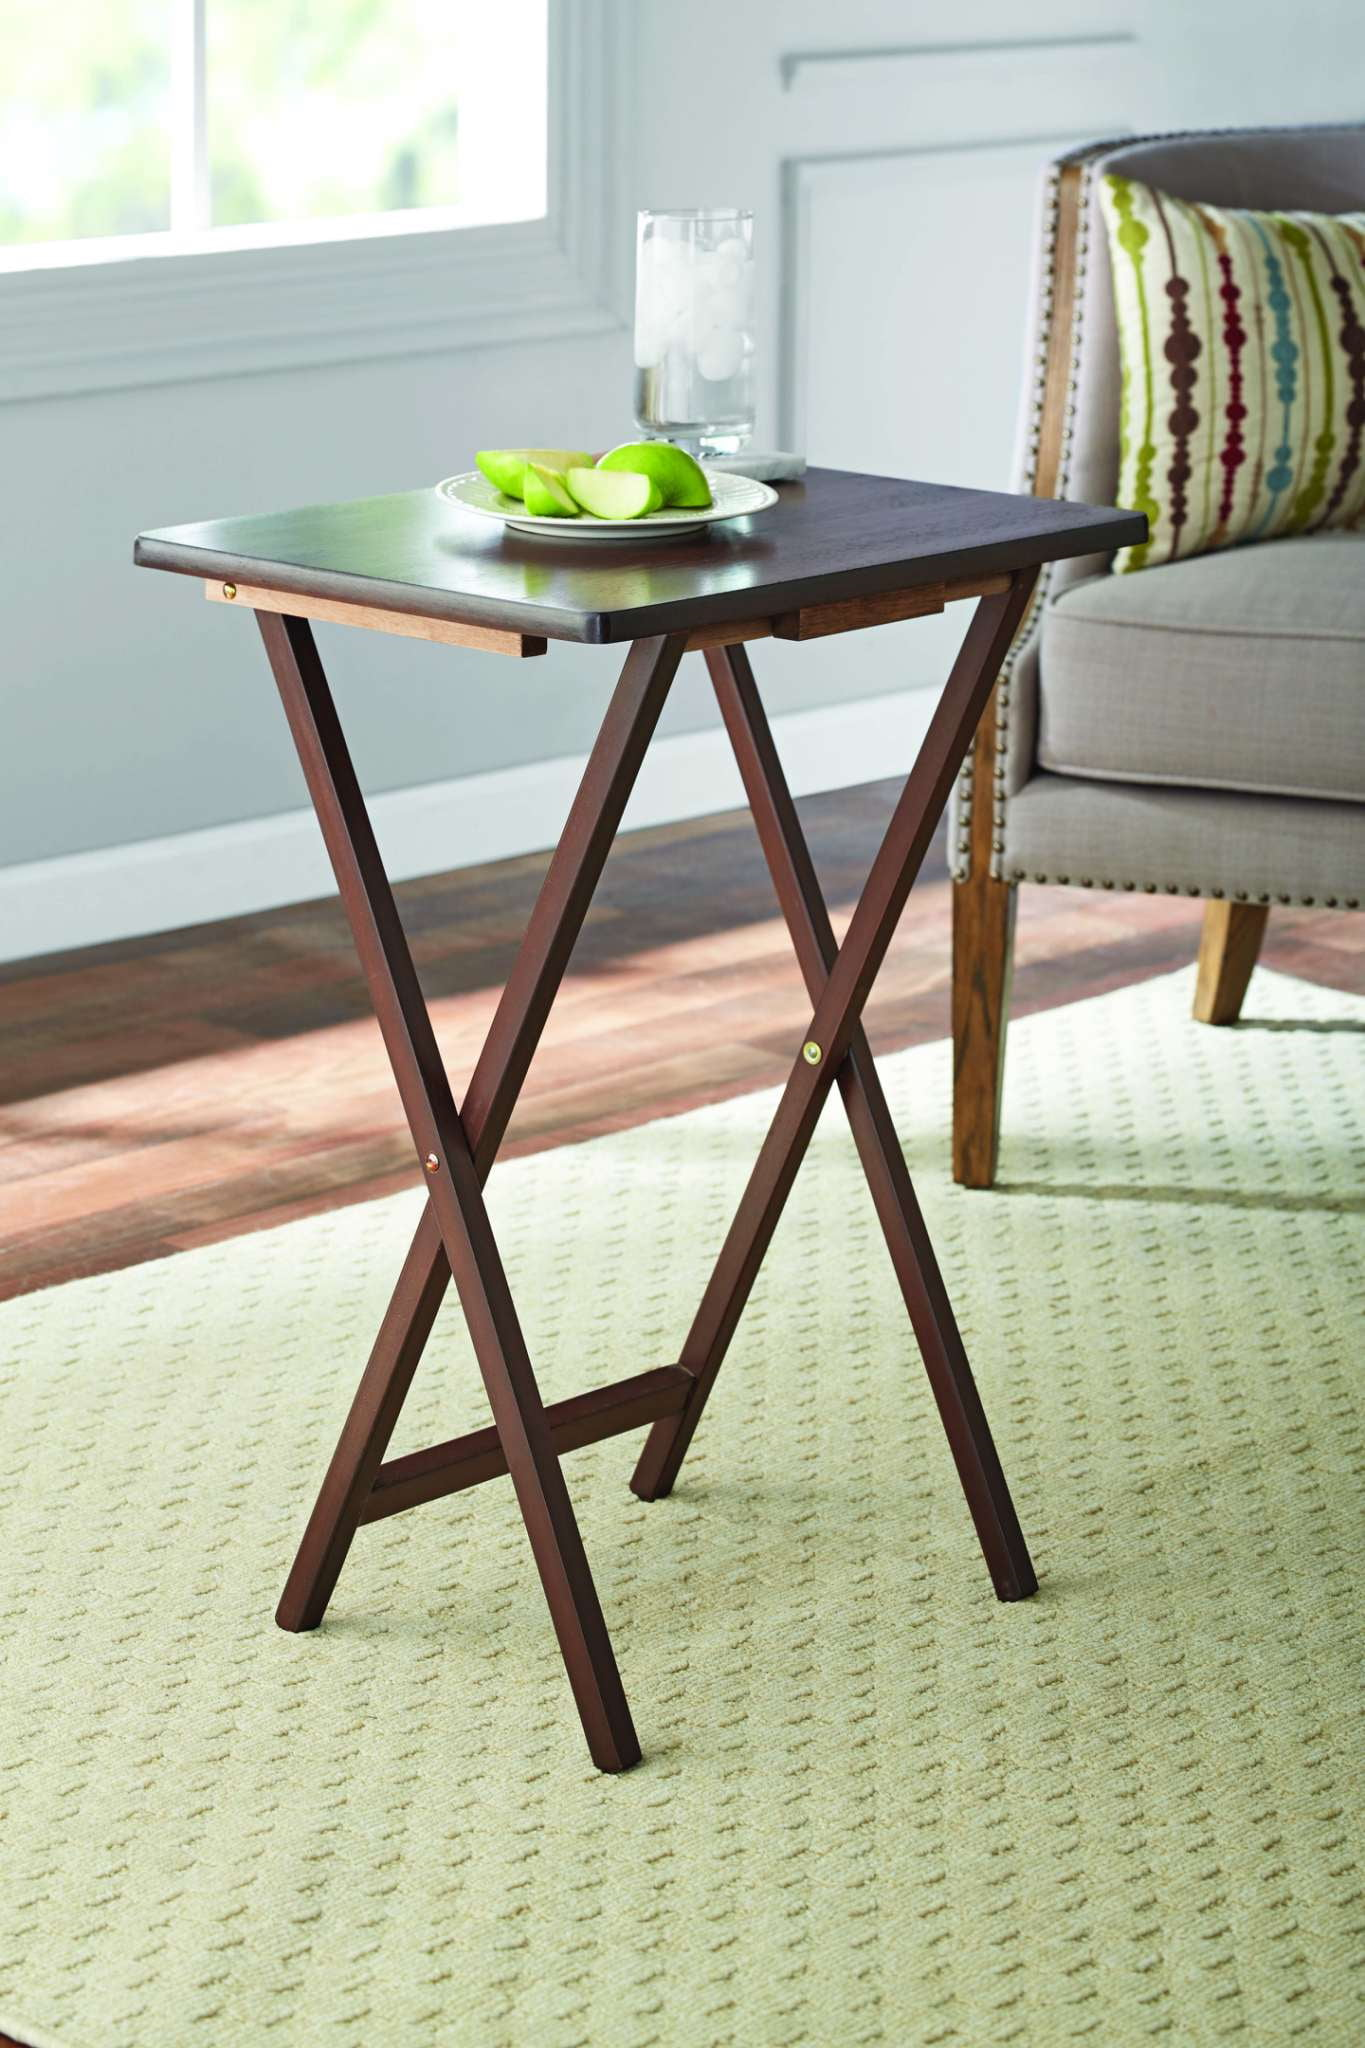 2-Pack Multi-Functional Mainstays  Folding TV Tray Table Set in Walnut Wood